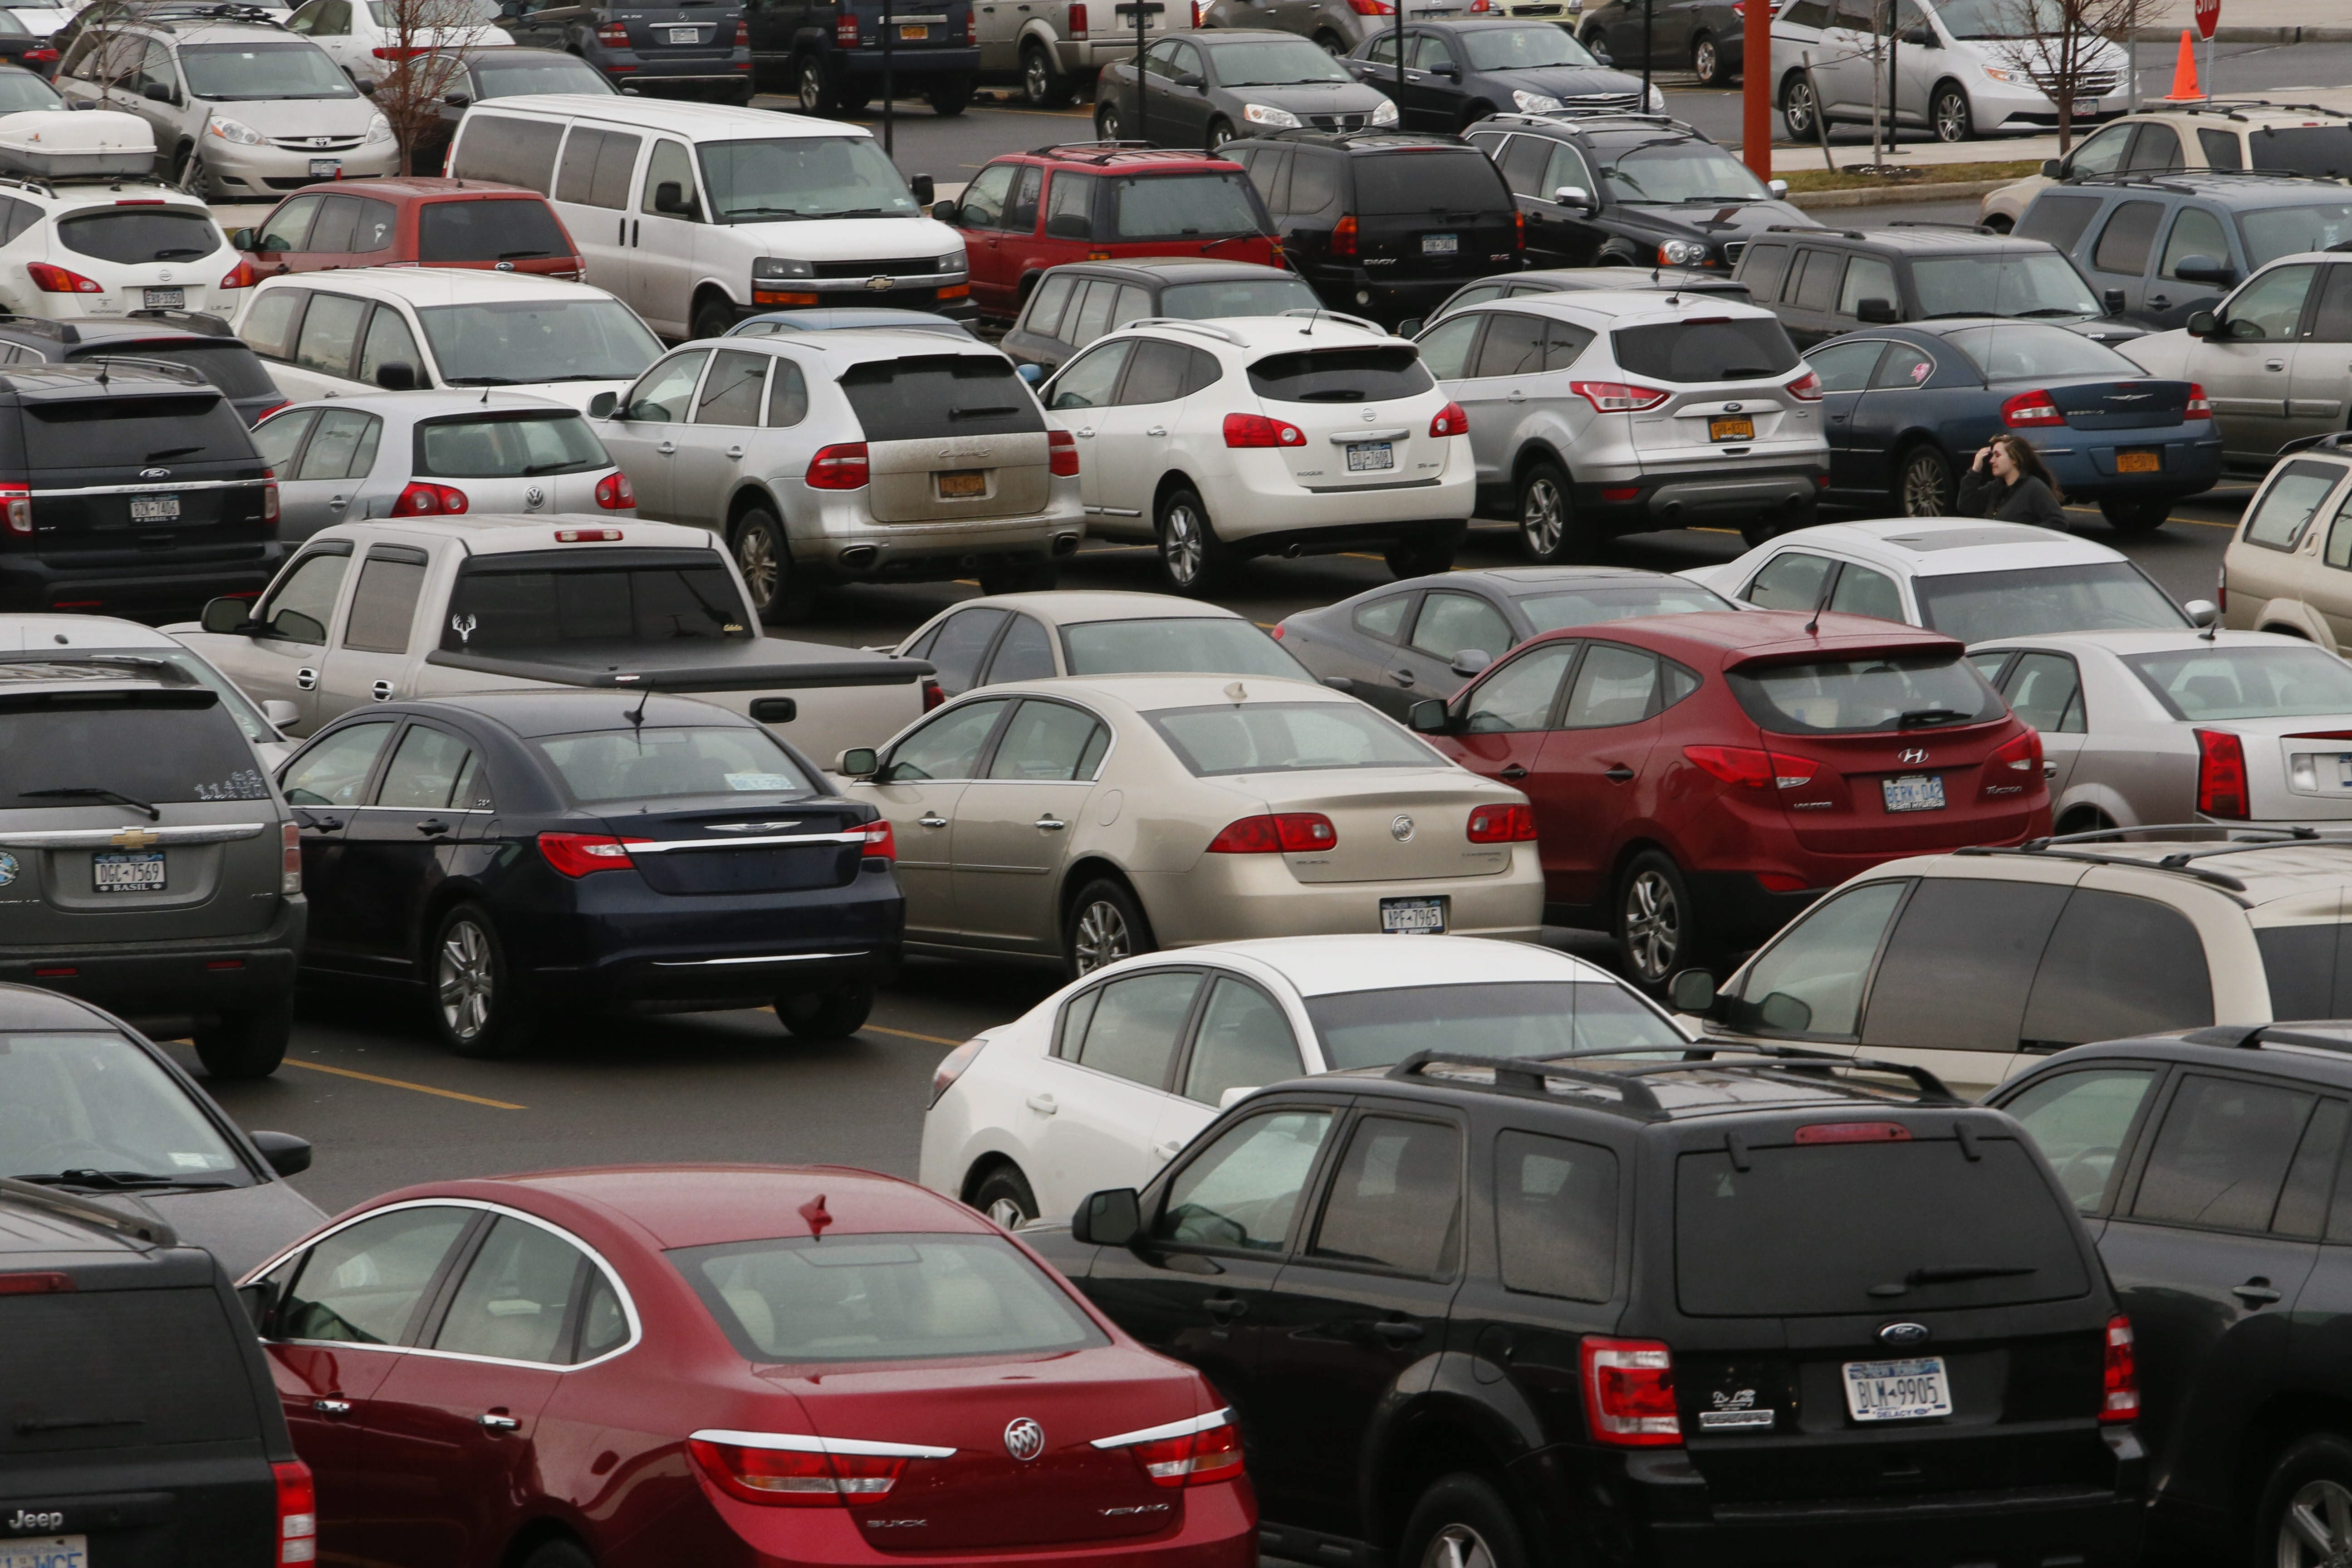 The Walden Galleria in Cheektowaga has more than 7,000 parking spaces in its lots.